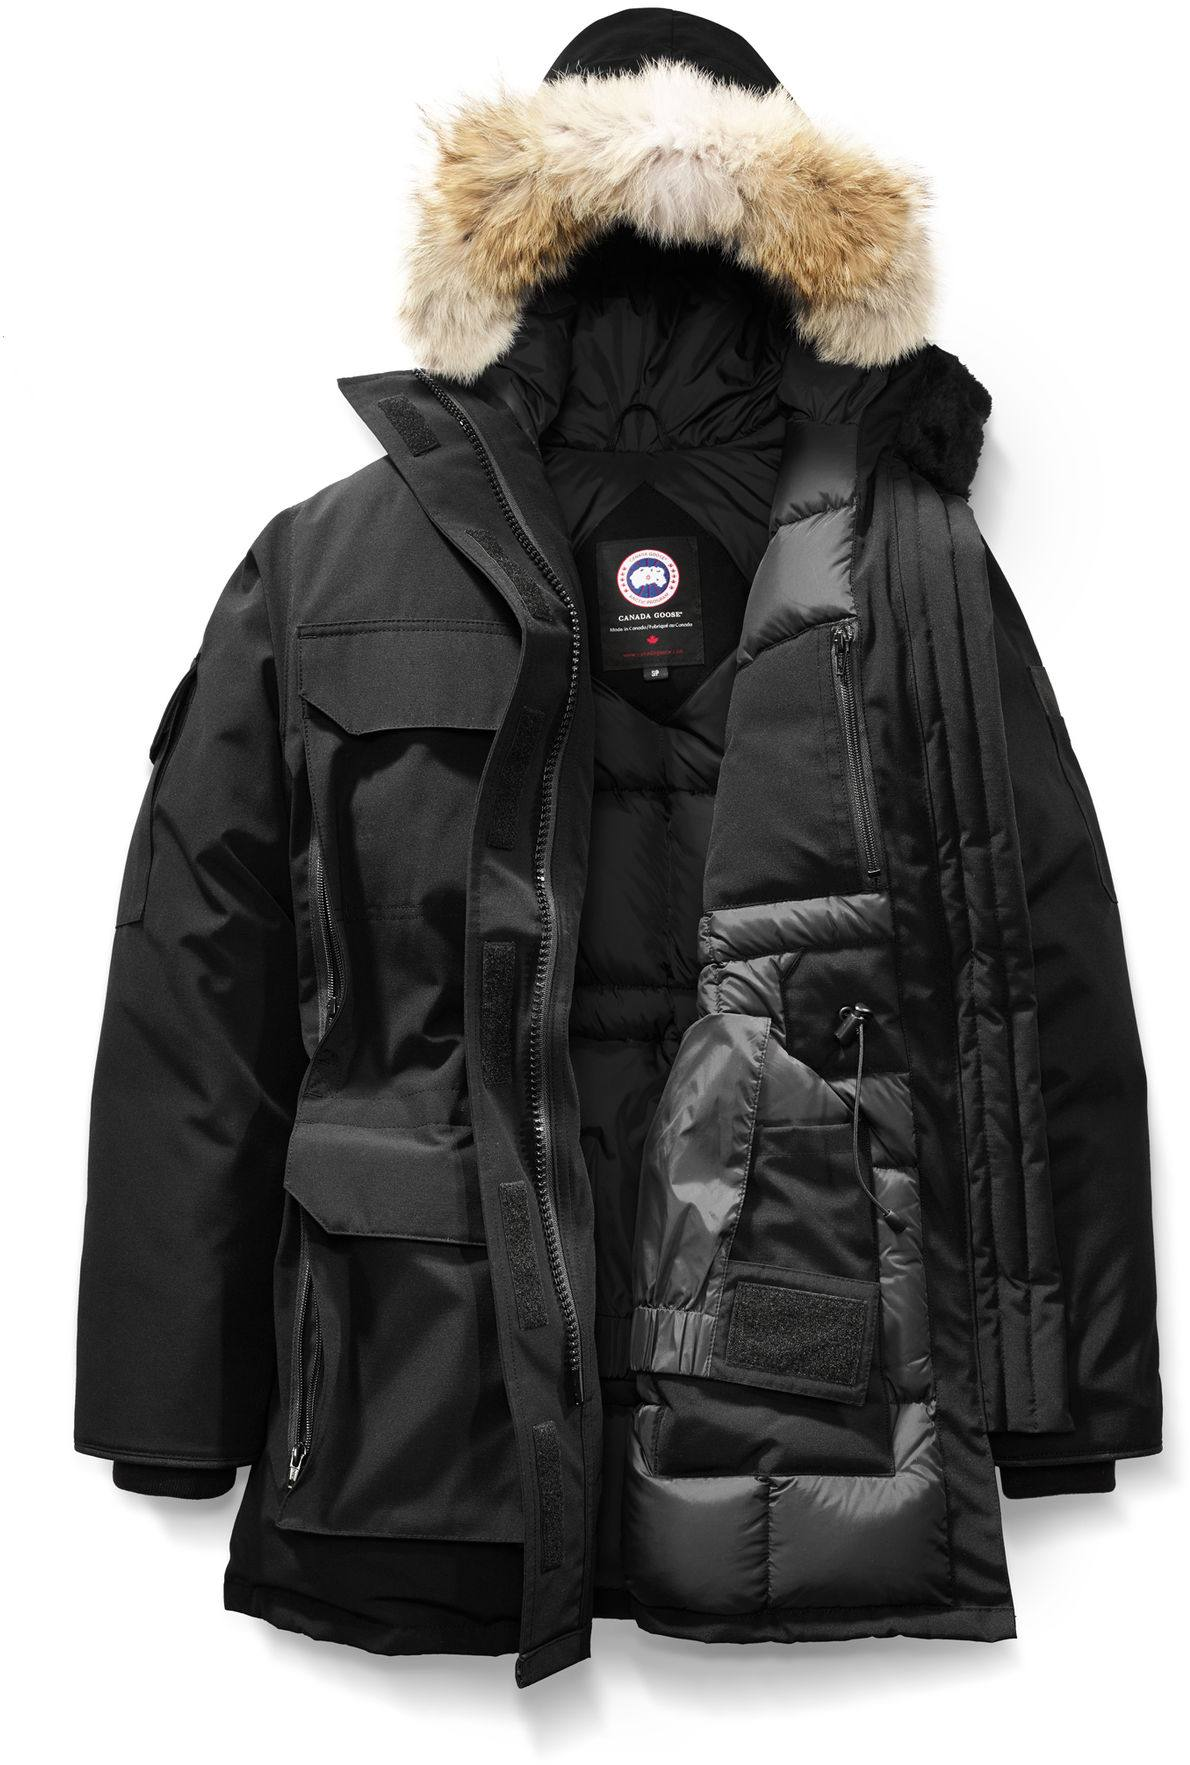 canada goose expedition parka sverige